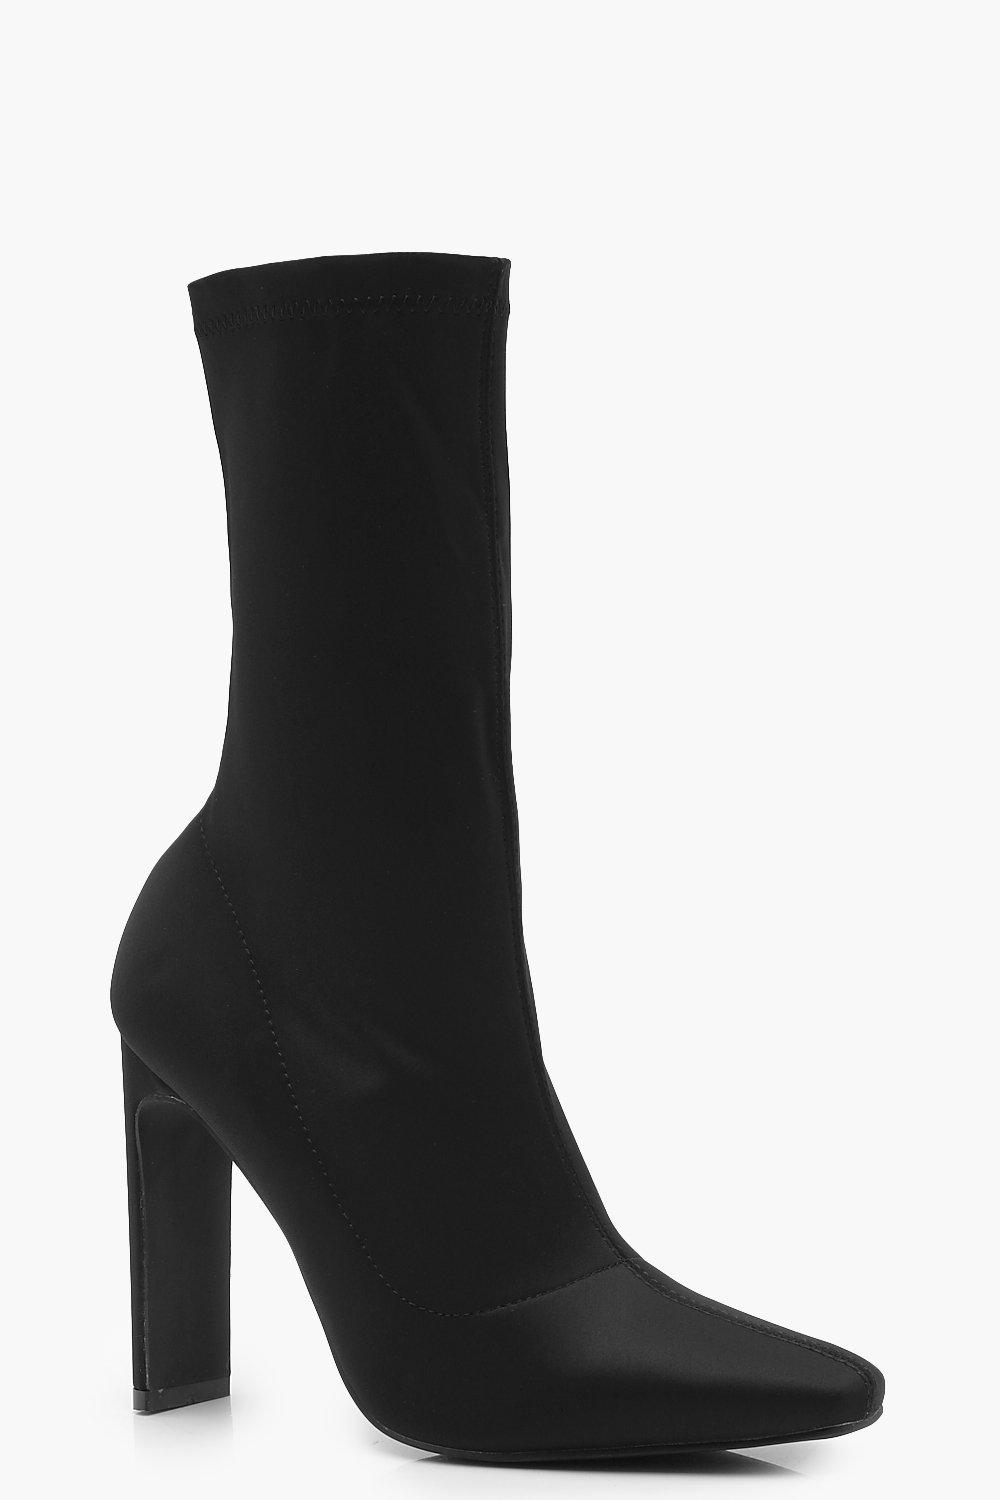 boohoo Womens Slim Straight Heel Sock Boots - Black - 4, Black